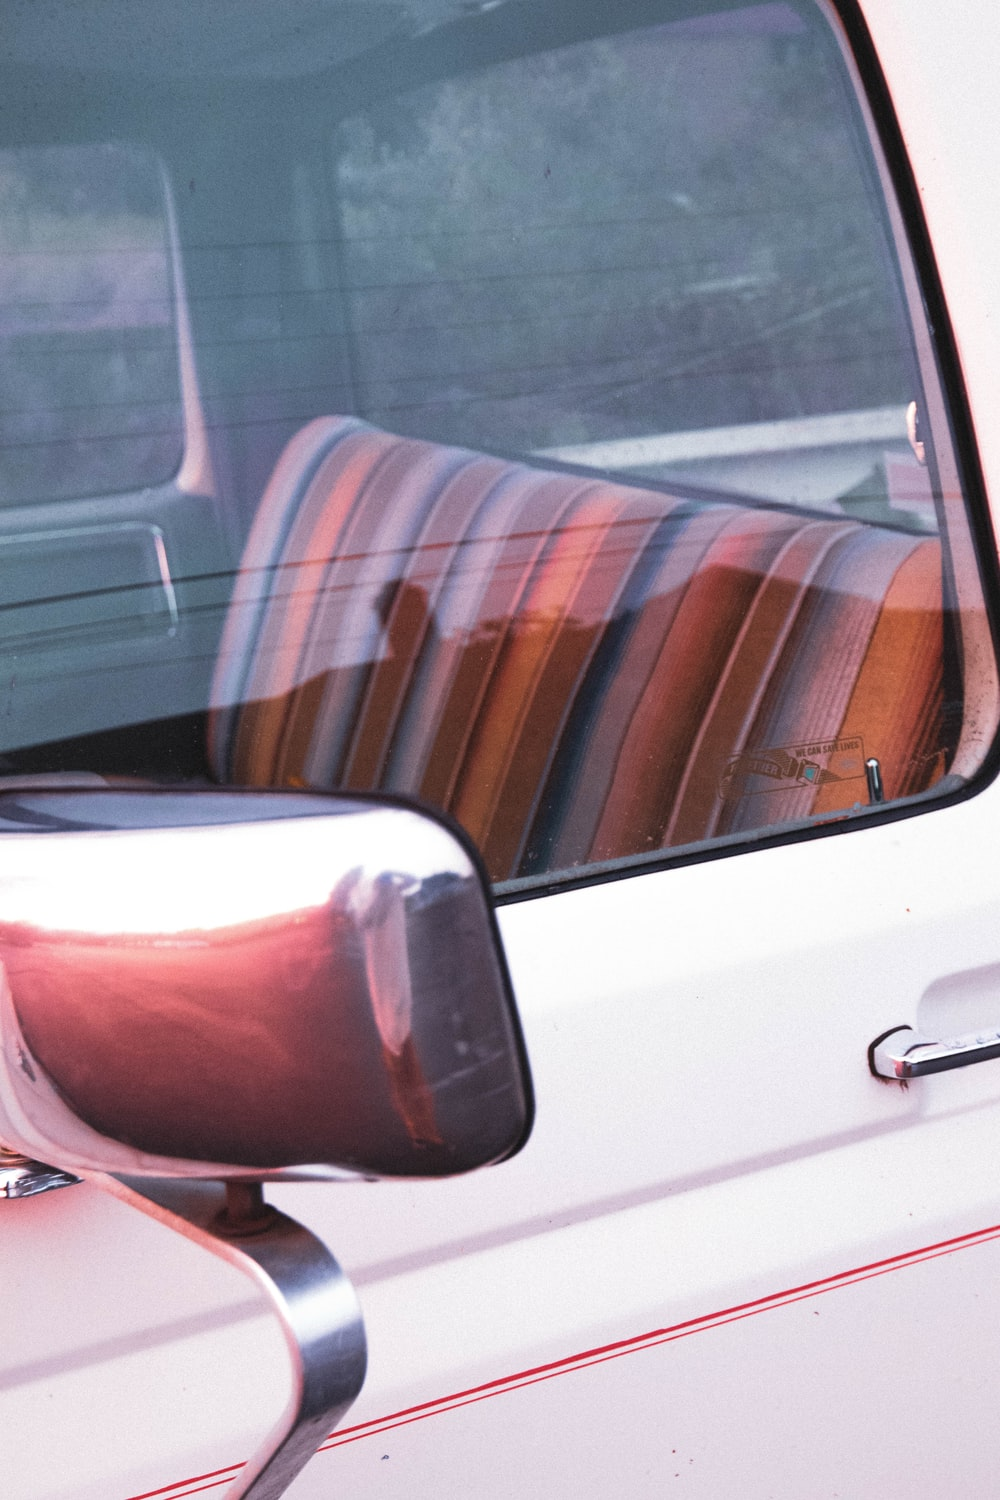 white car door with brown and white striped seat